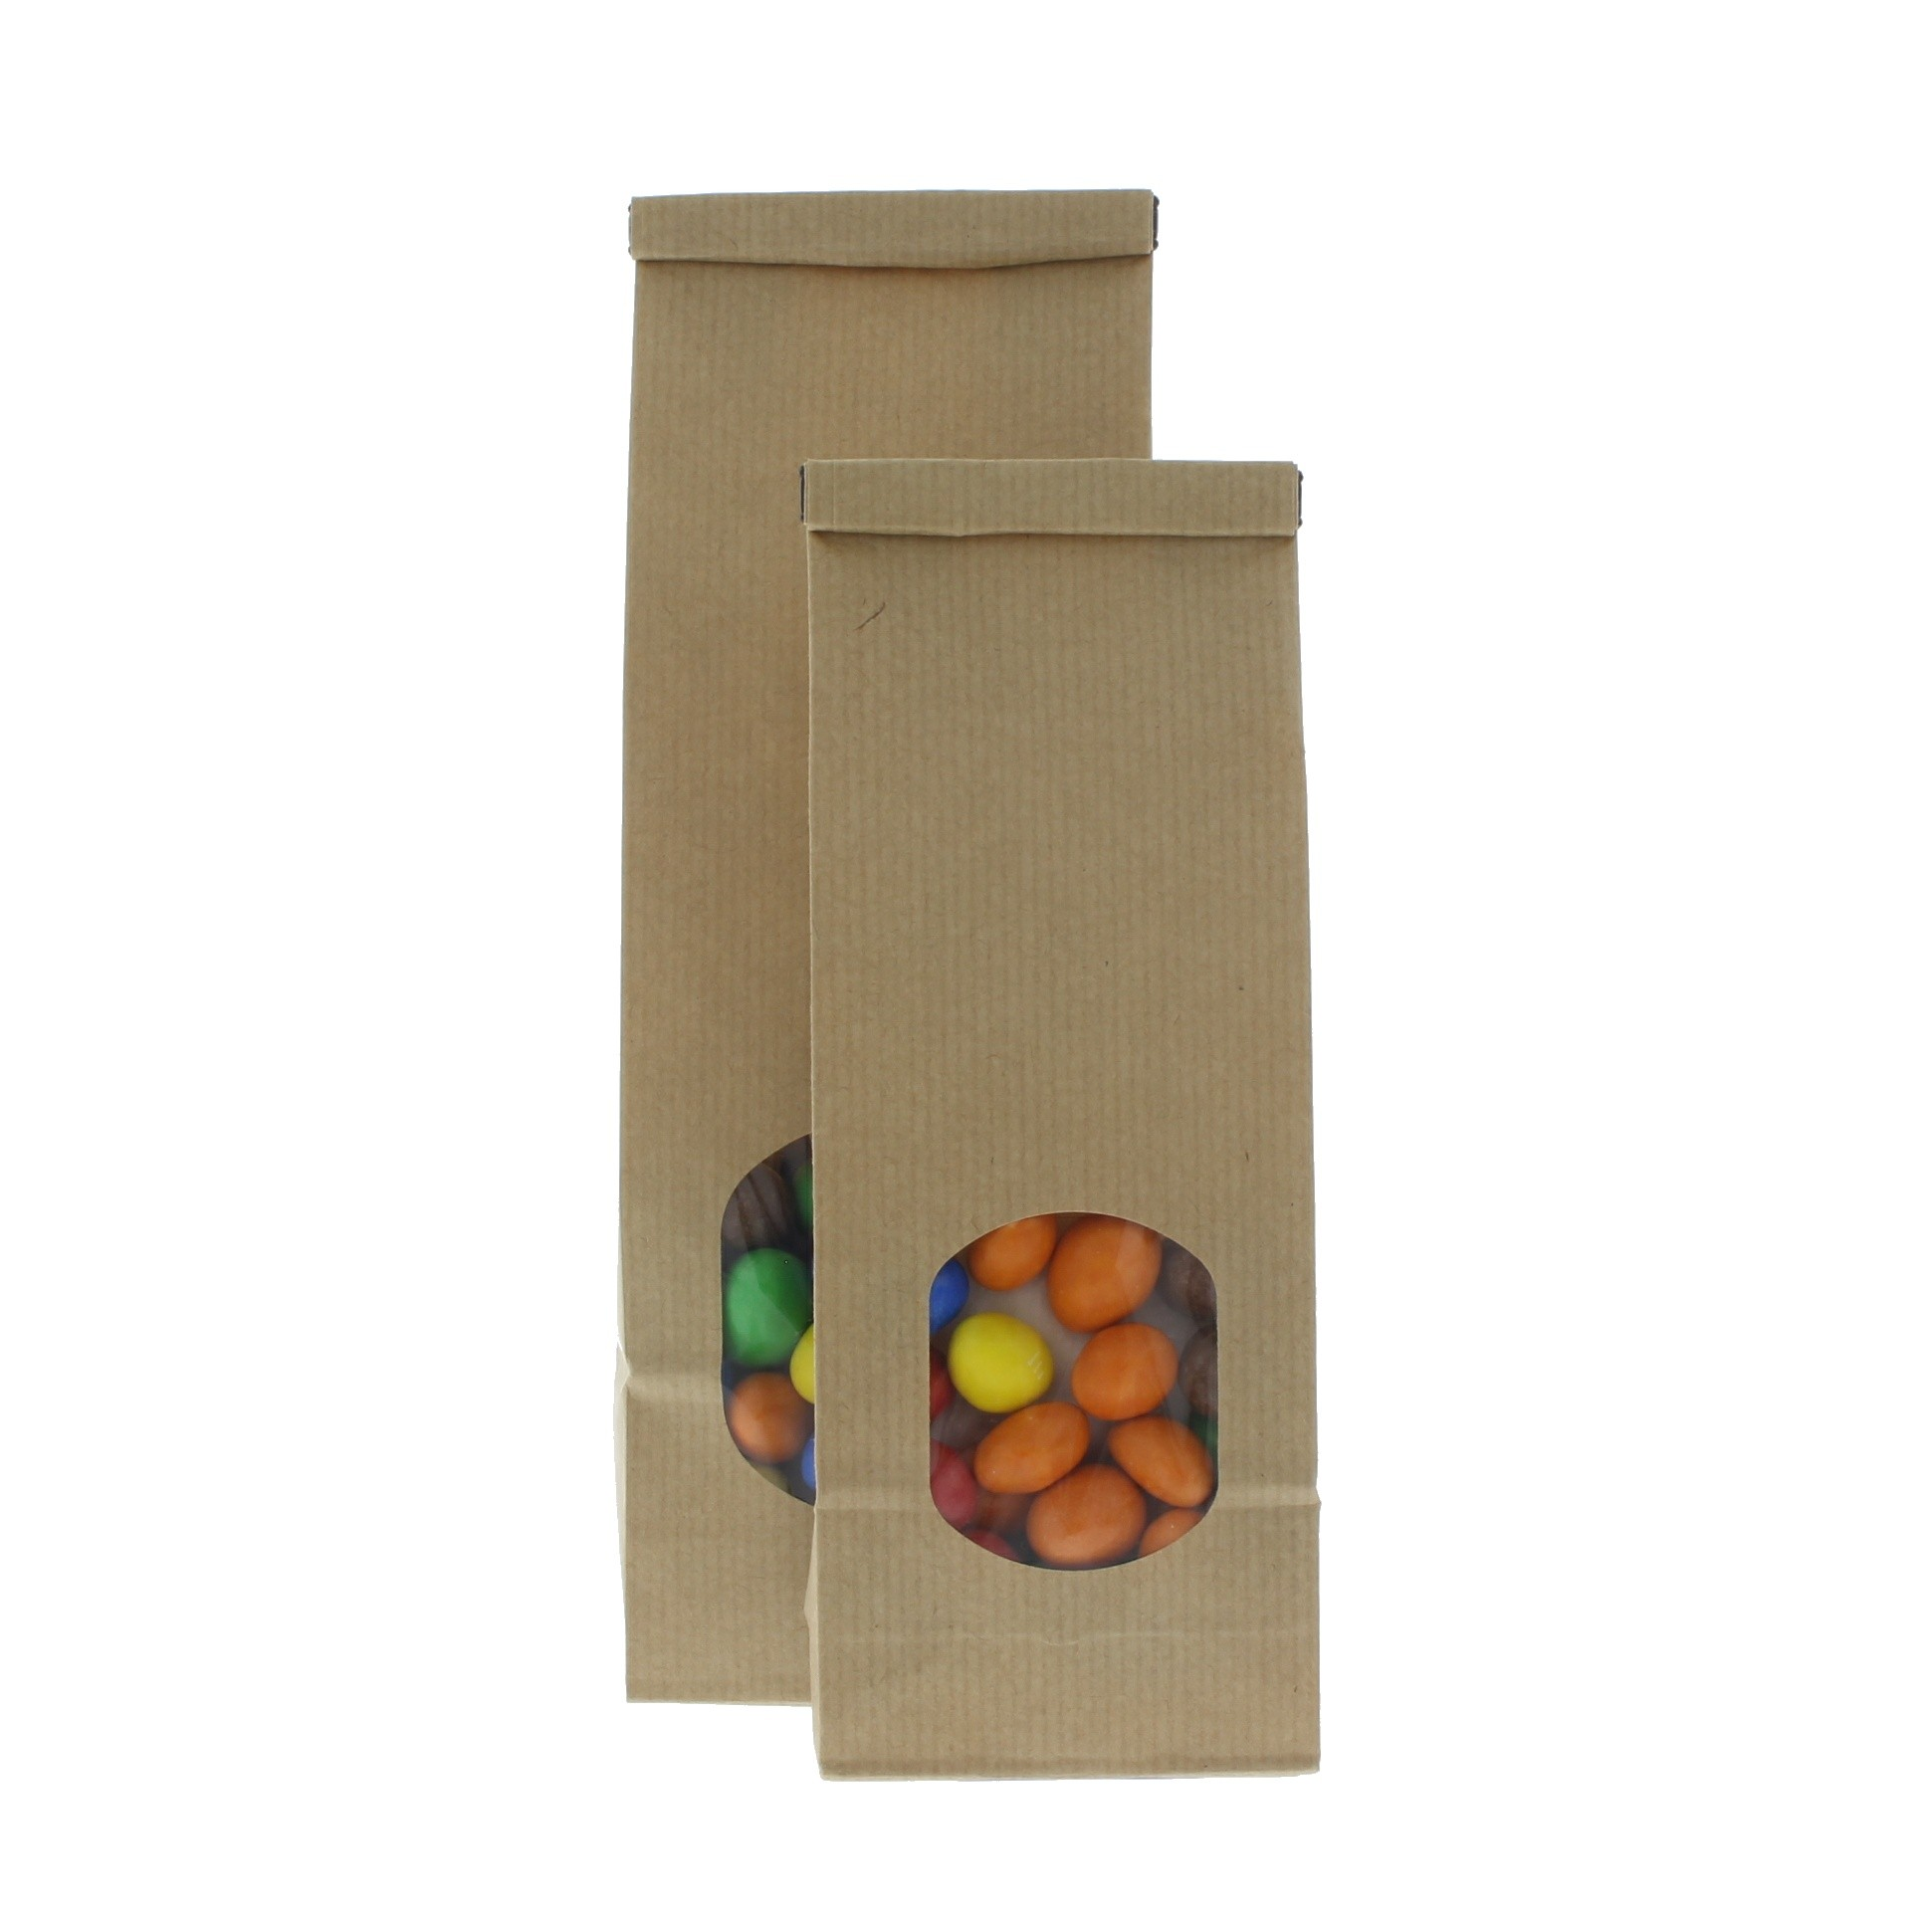 Block Bottom Bag Kraft Paper With Window Pouchdirect